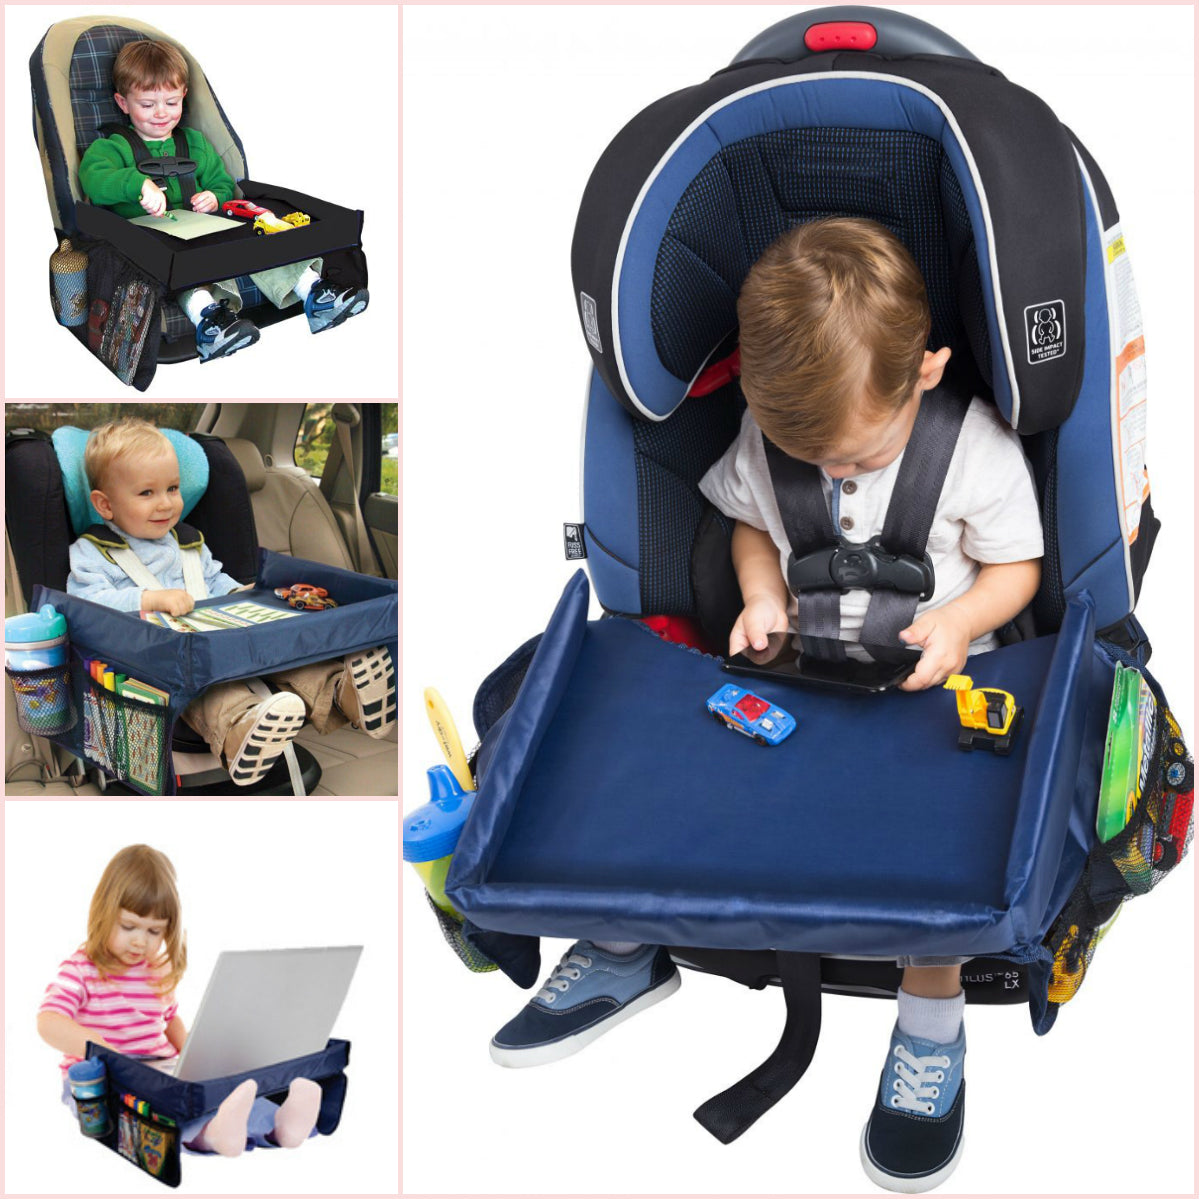 Tray Board Table Stroller Accessories Child Car Seat